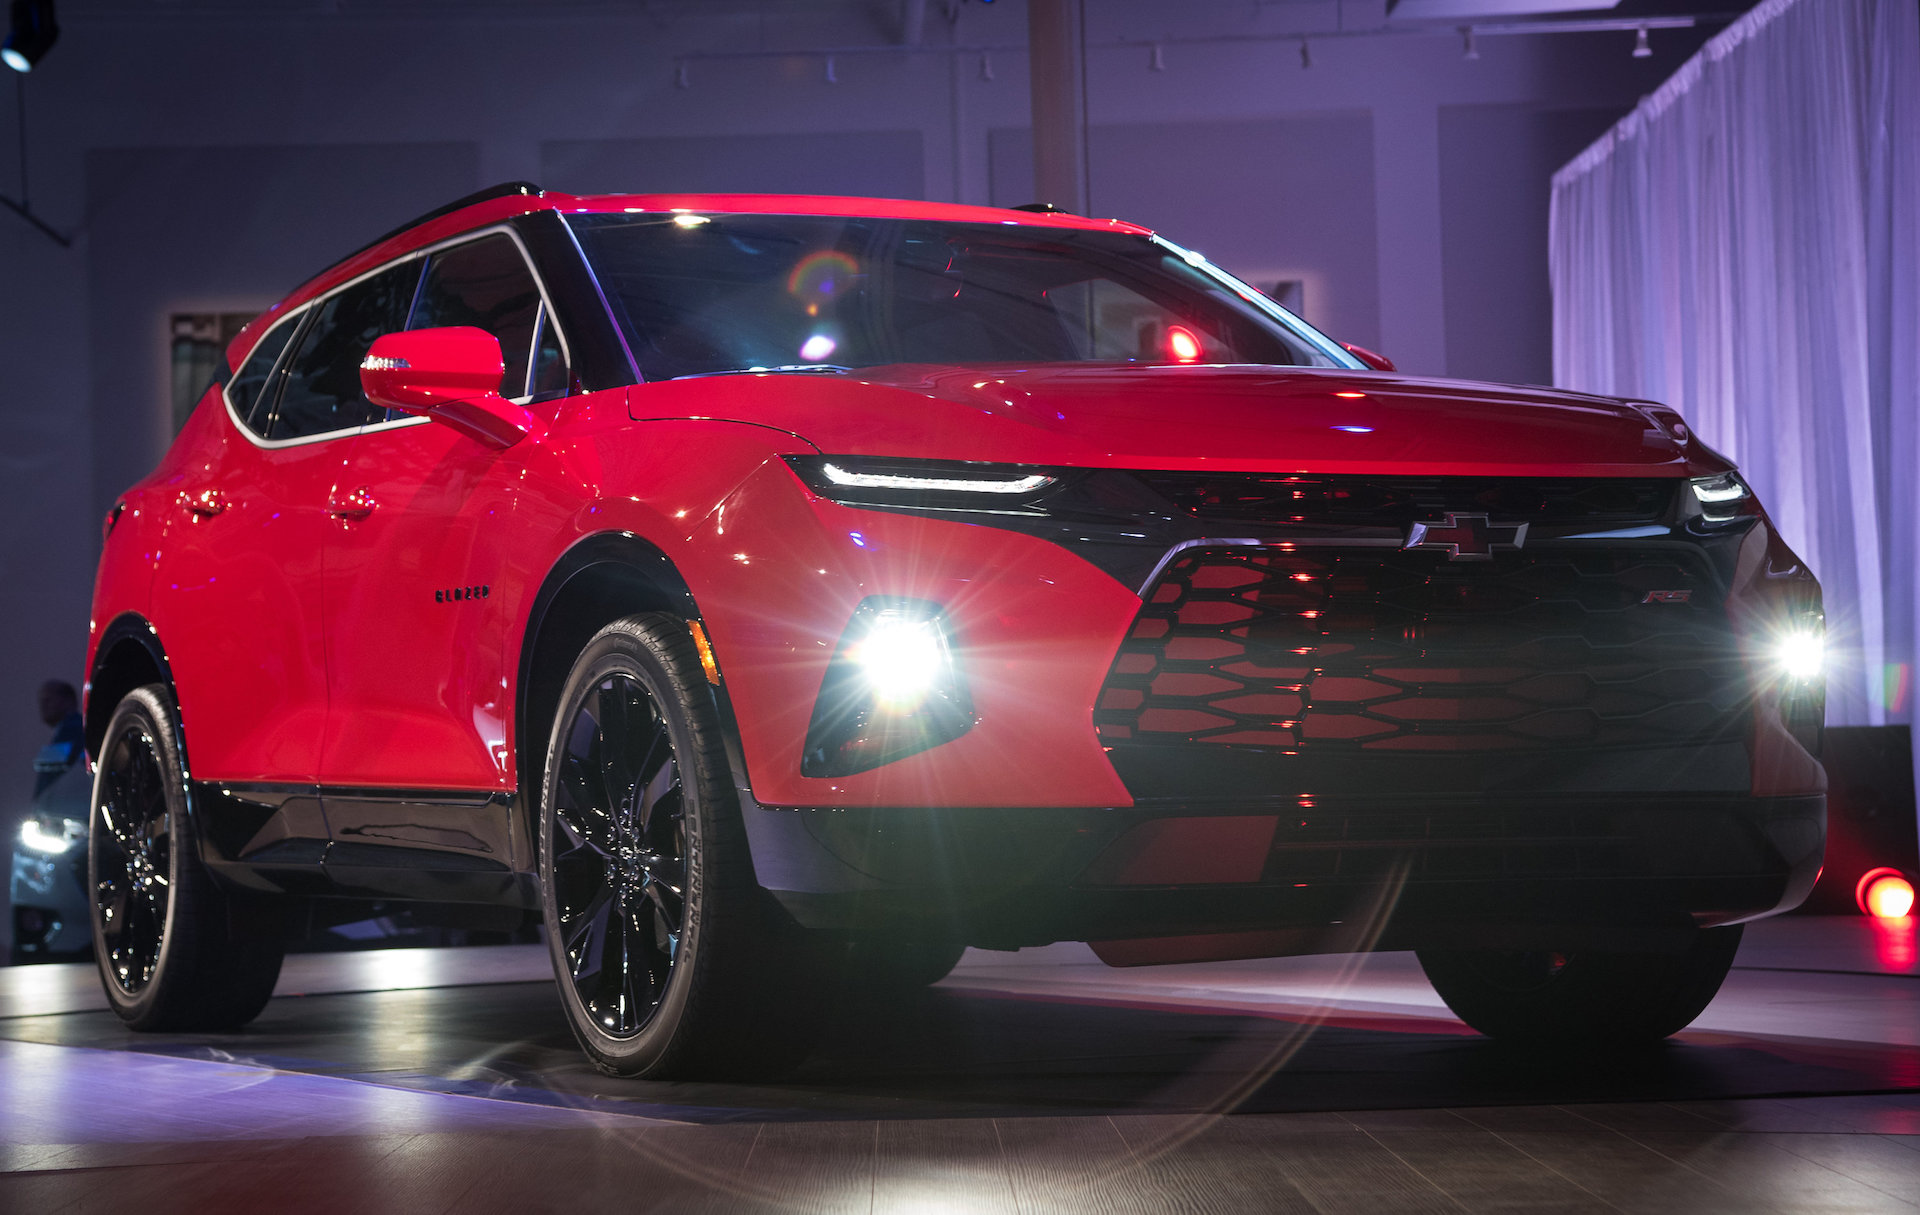 2019 Chevy Blazer, Corvette ZR1 recall, self-driving Volvo ...